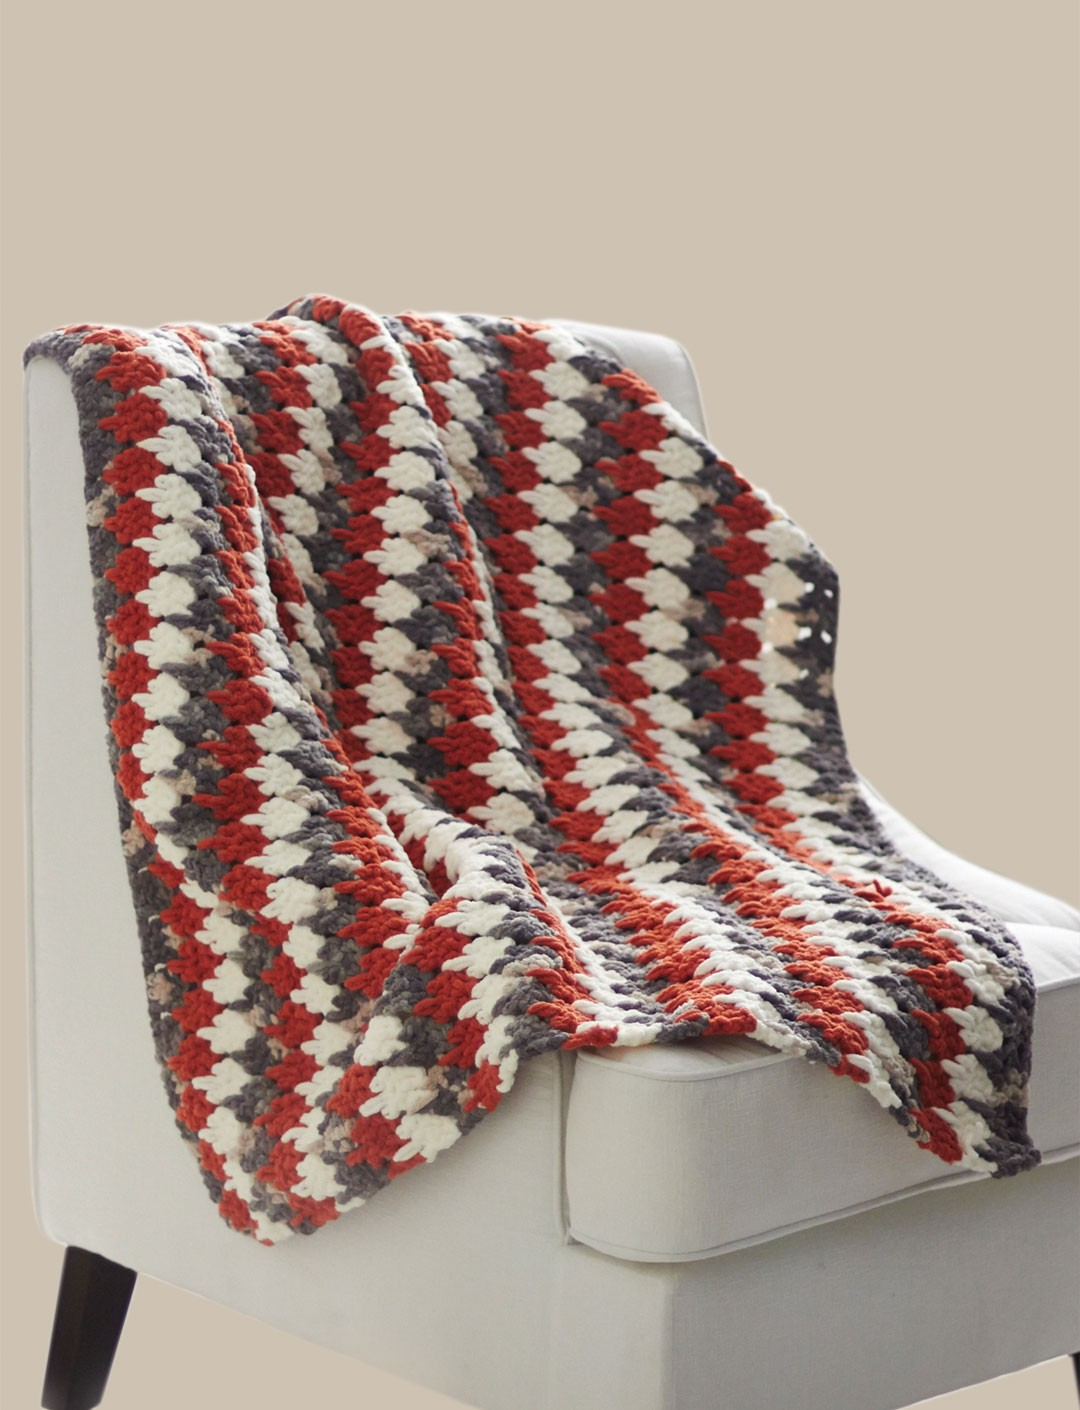 Larksfoot Blanket